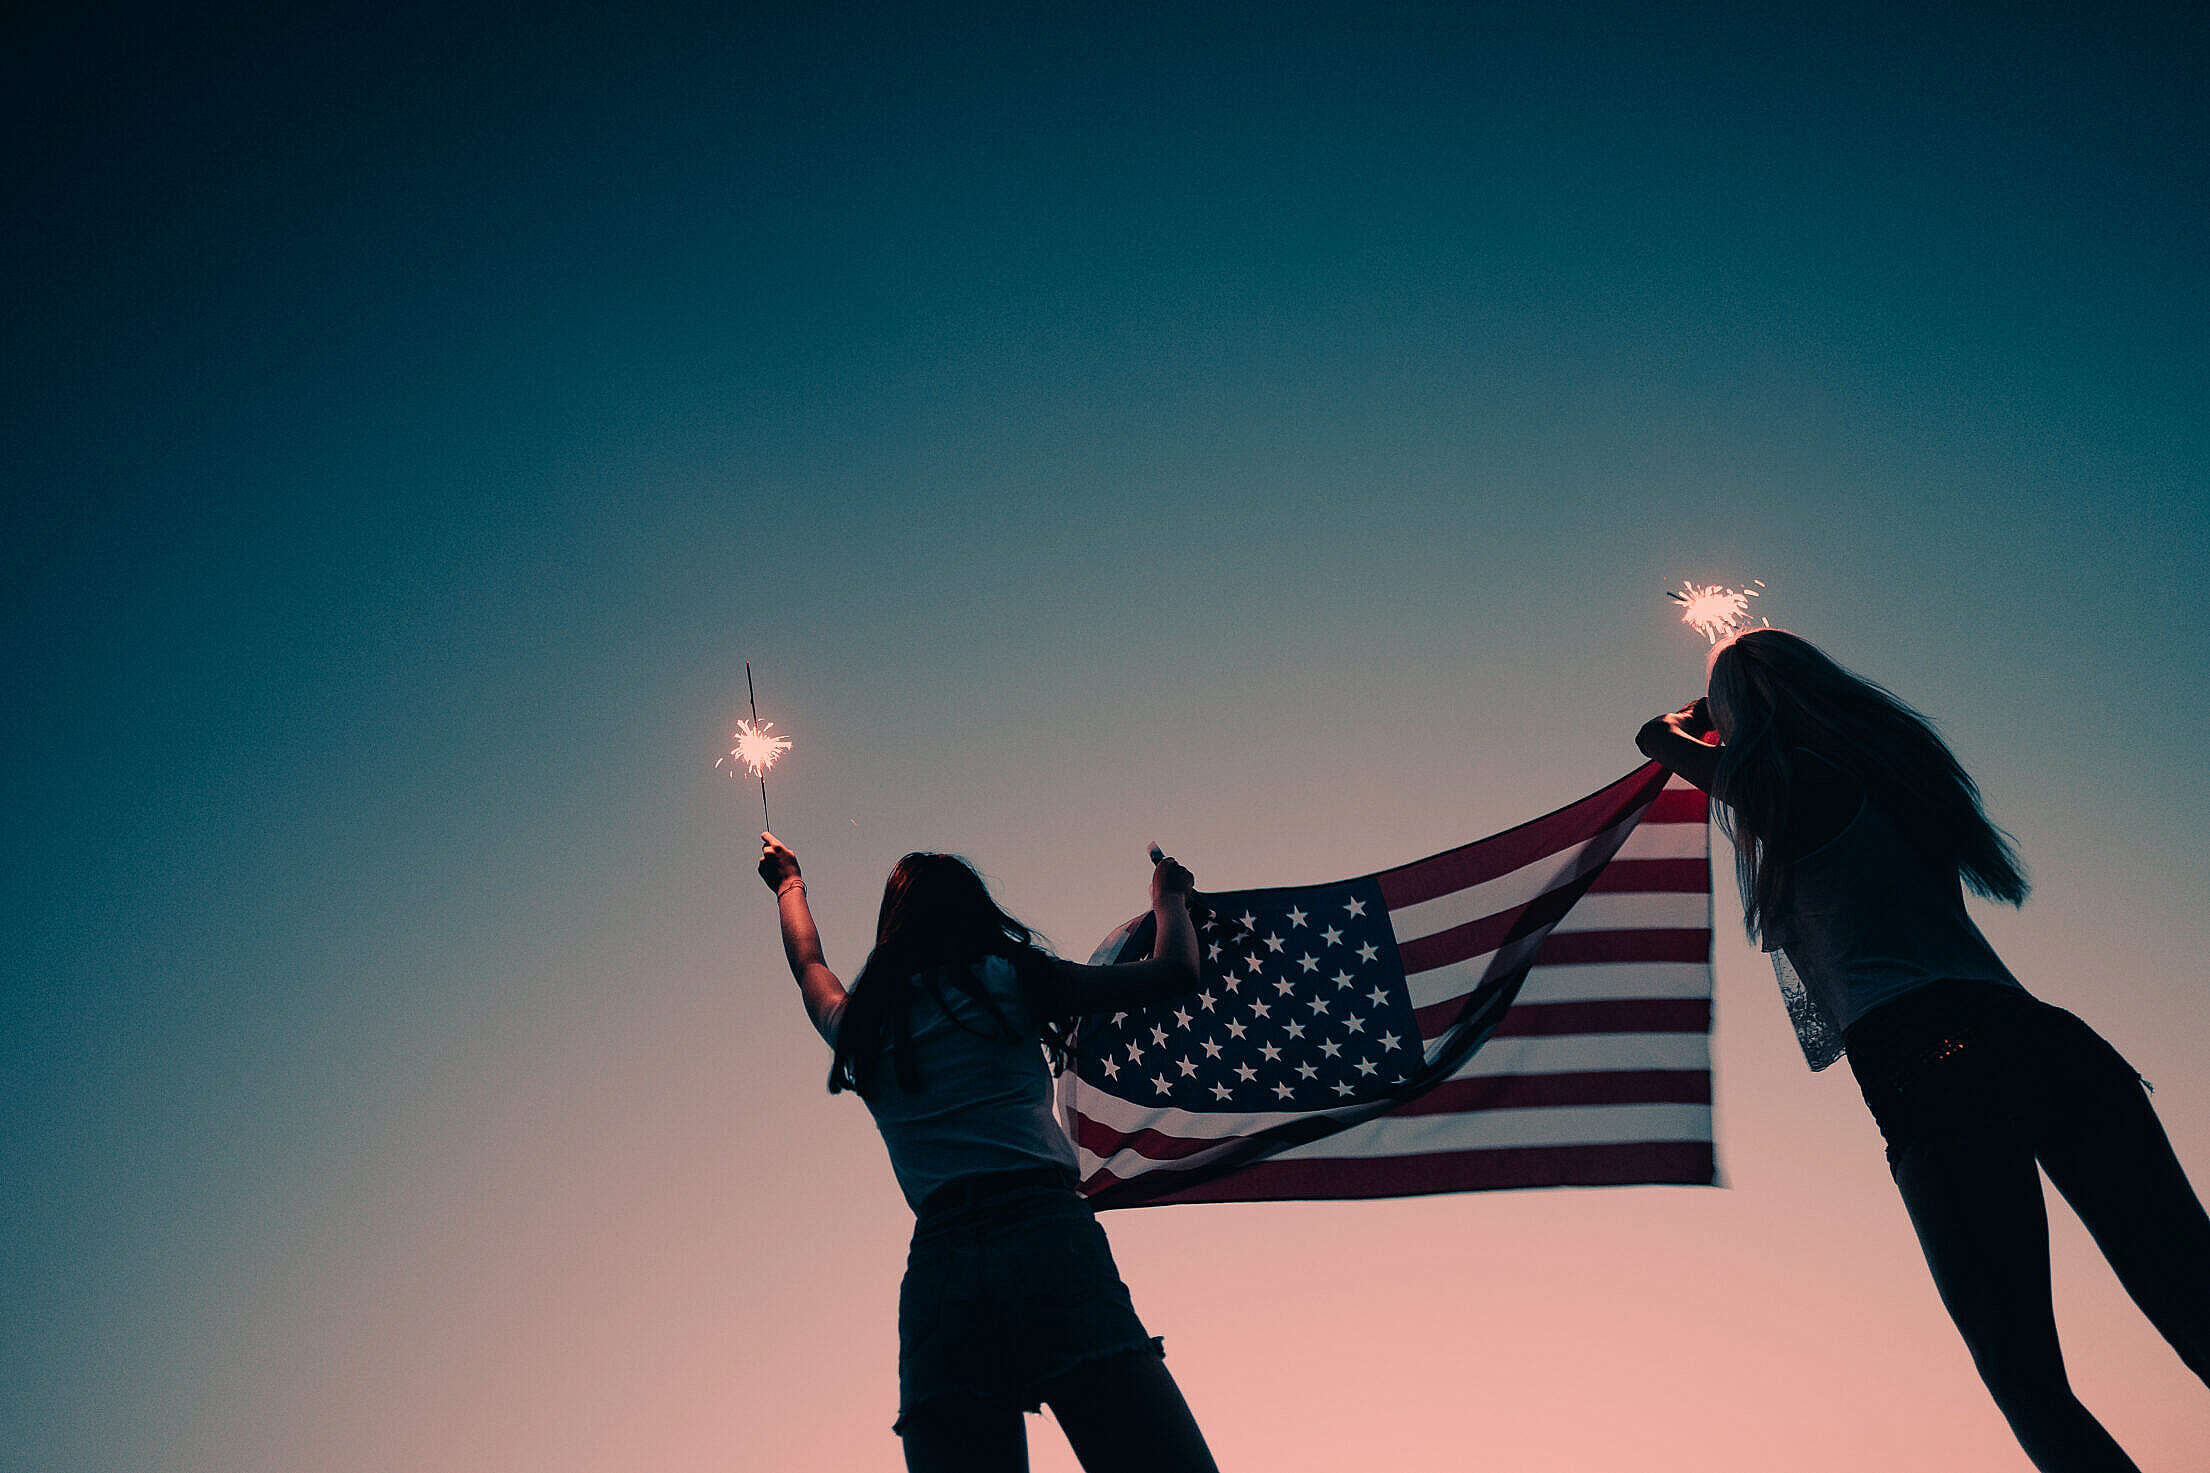 Girls Holding American Flag and Sparklers in The Early Evening Free Stock Photo